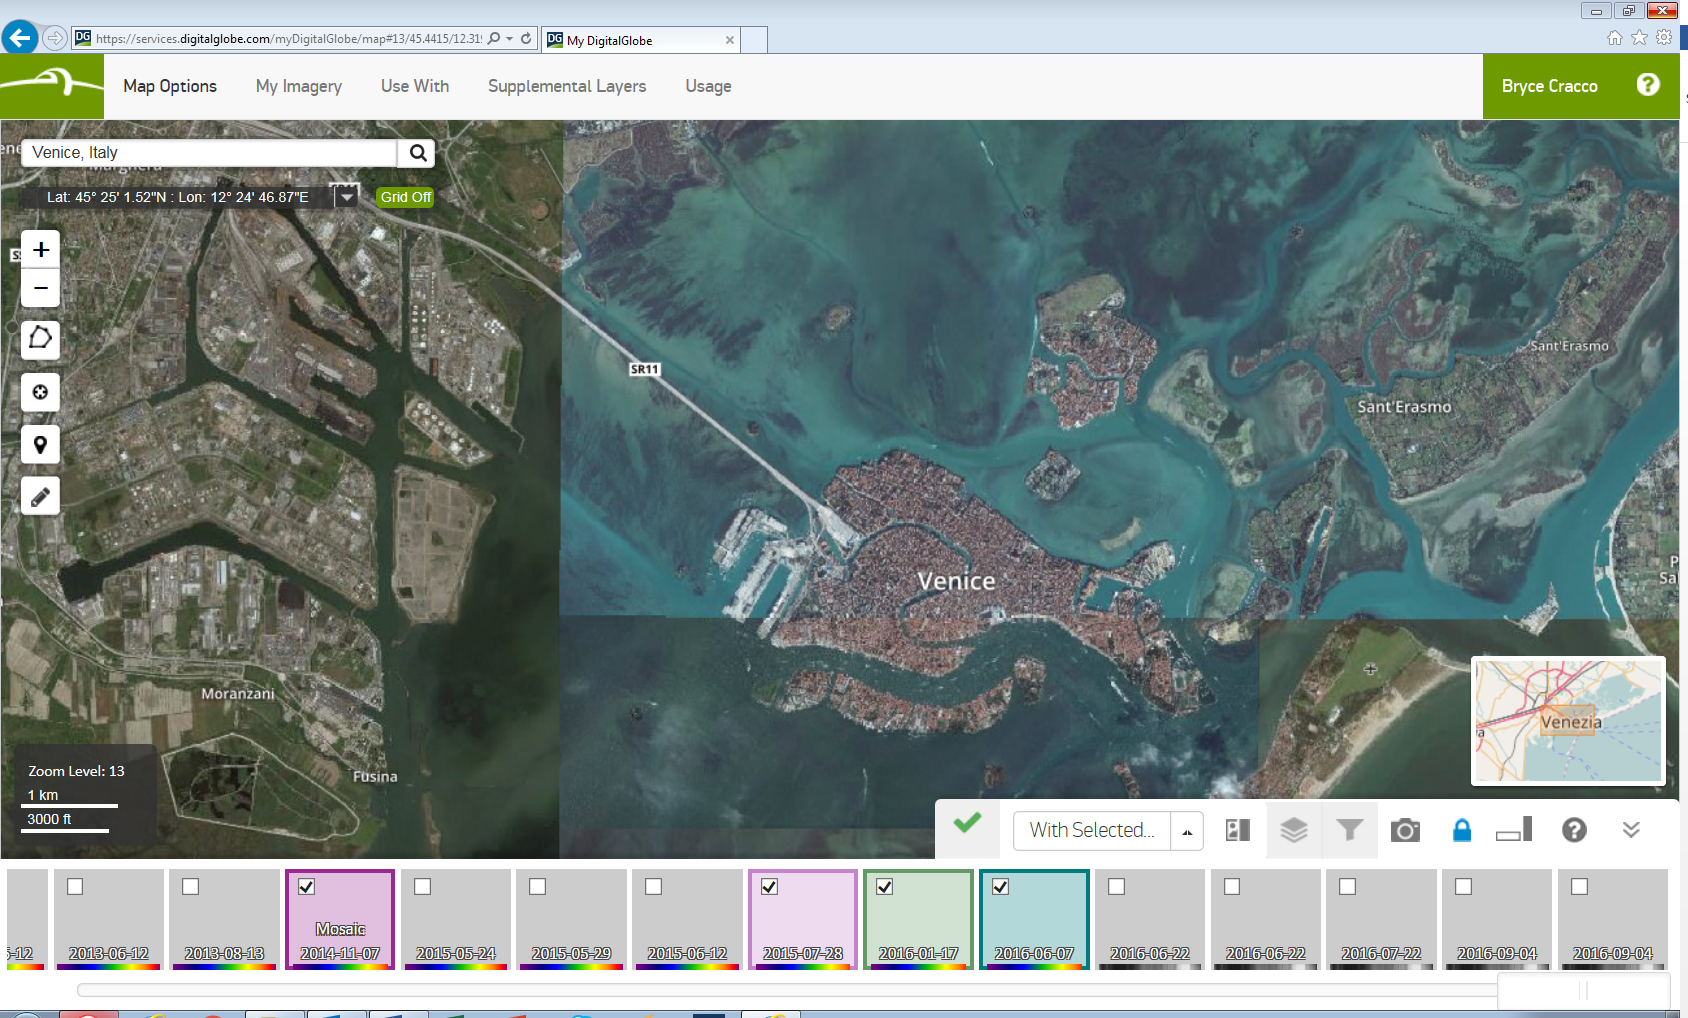 Browsing time lapse imagery of Venice in DigitalGlobe Basemap